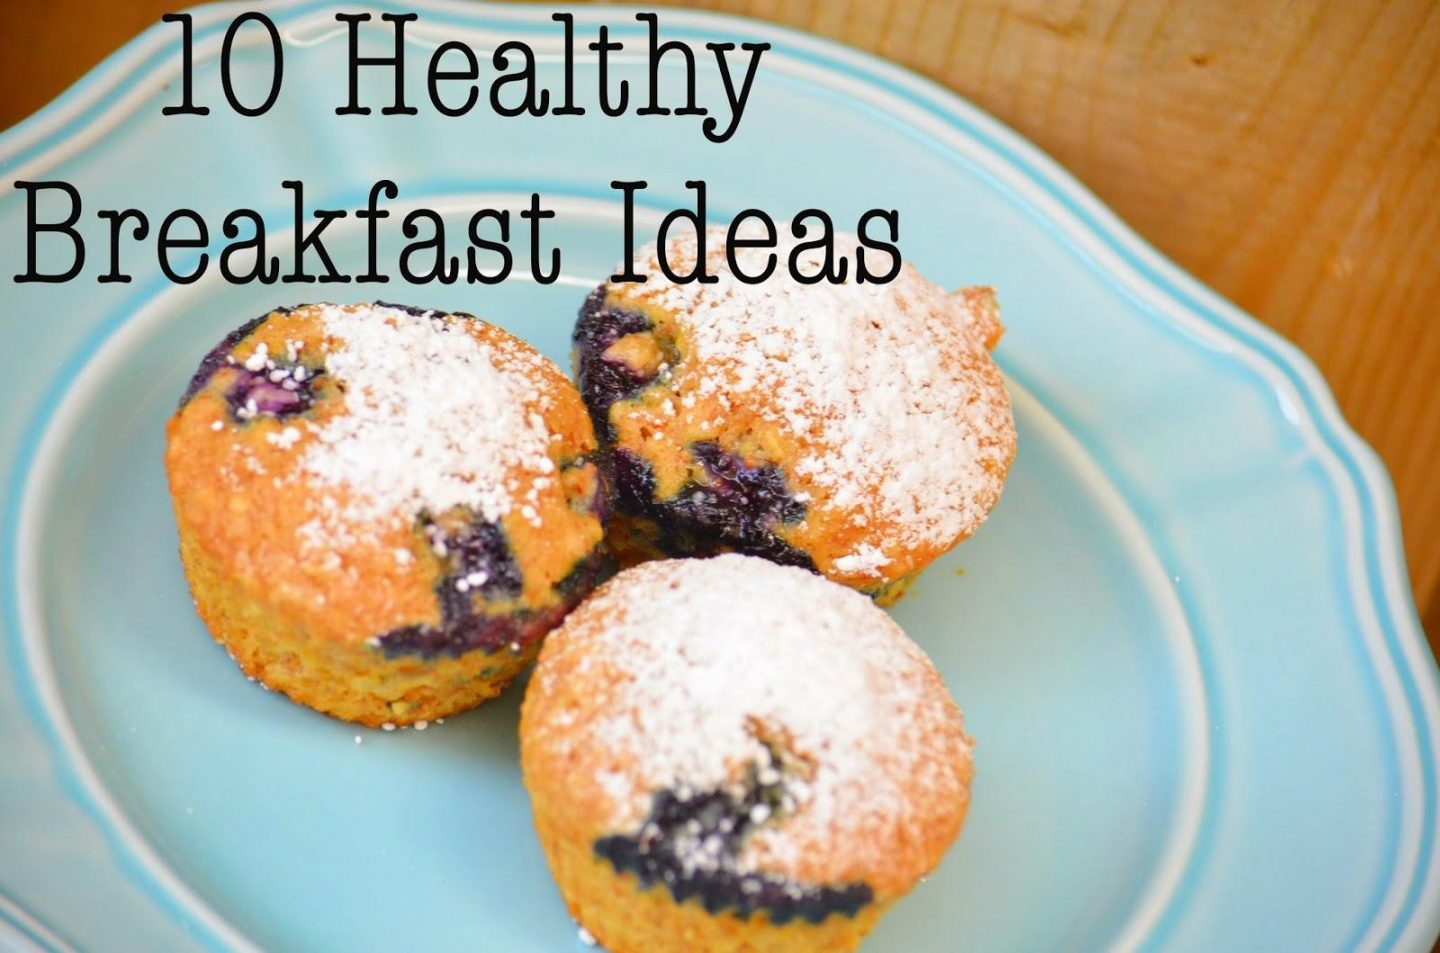 Food, Cook, Breakfast, eating healthy, healthy eating, healthy, breakfast ideas, 10 Healthy Breakfast Ideas